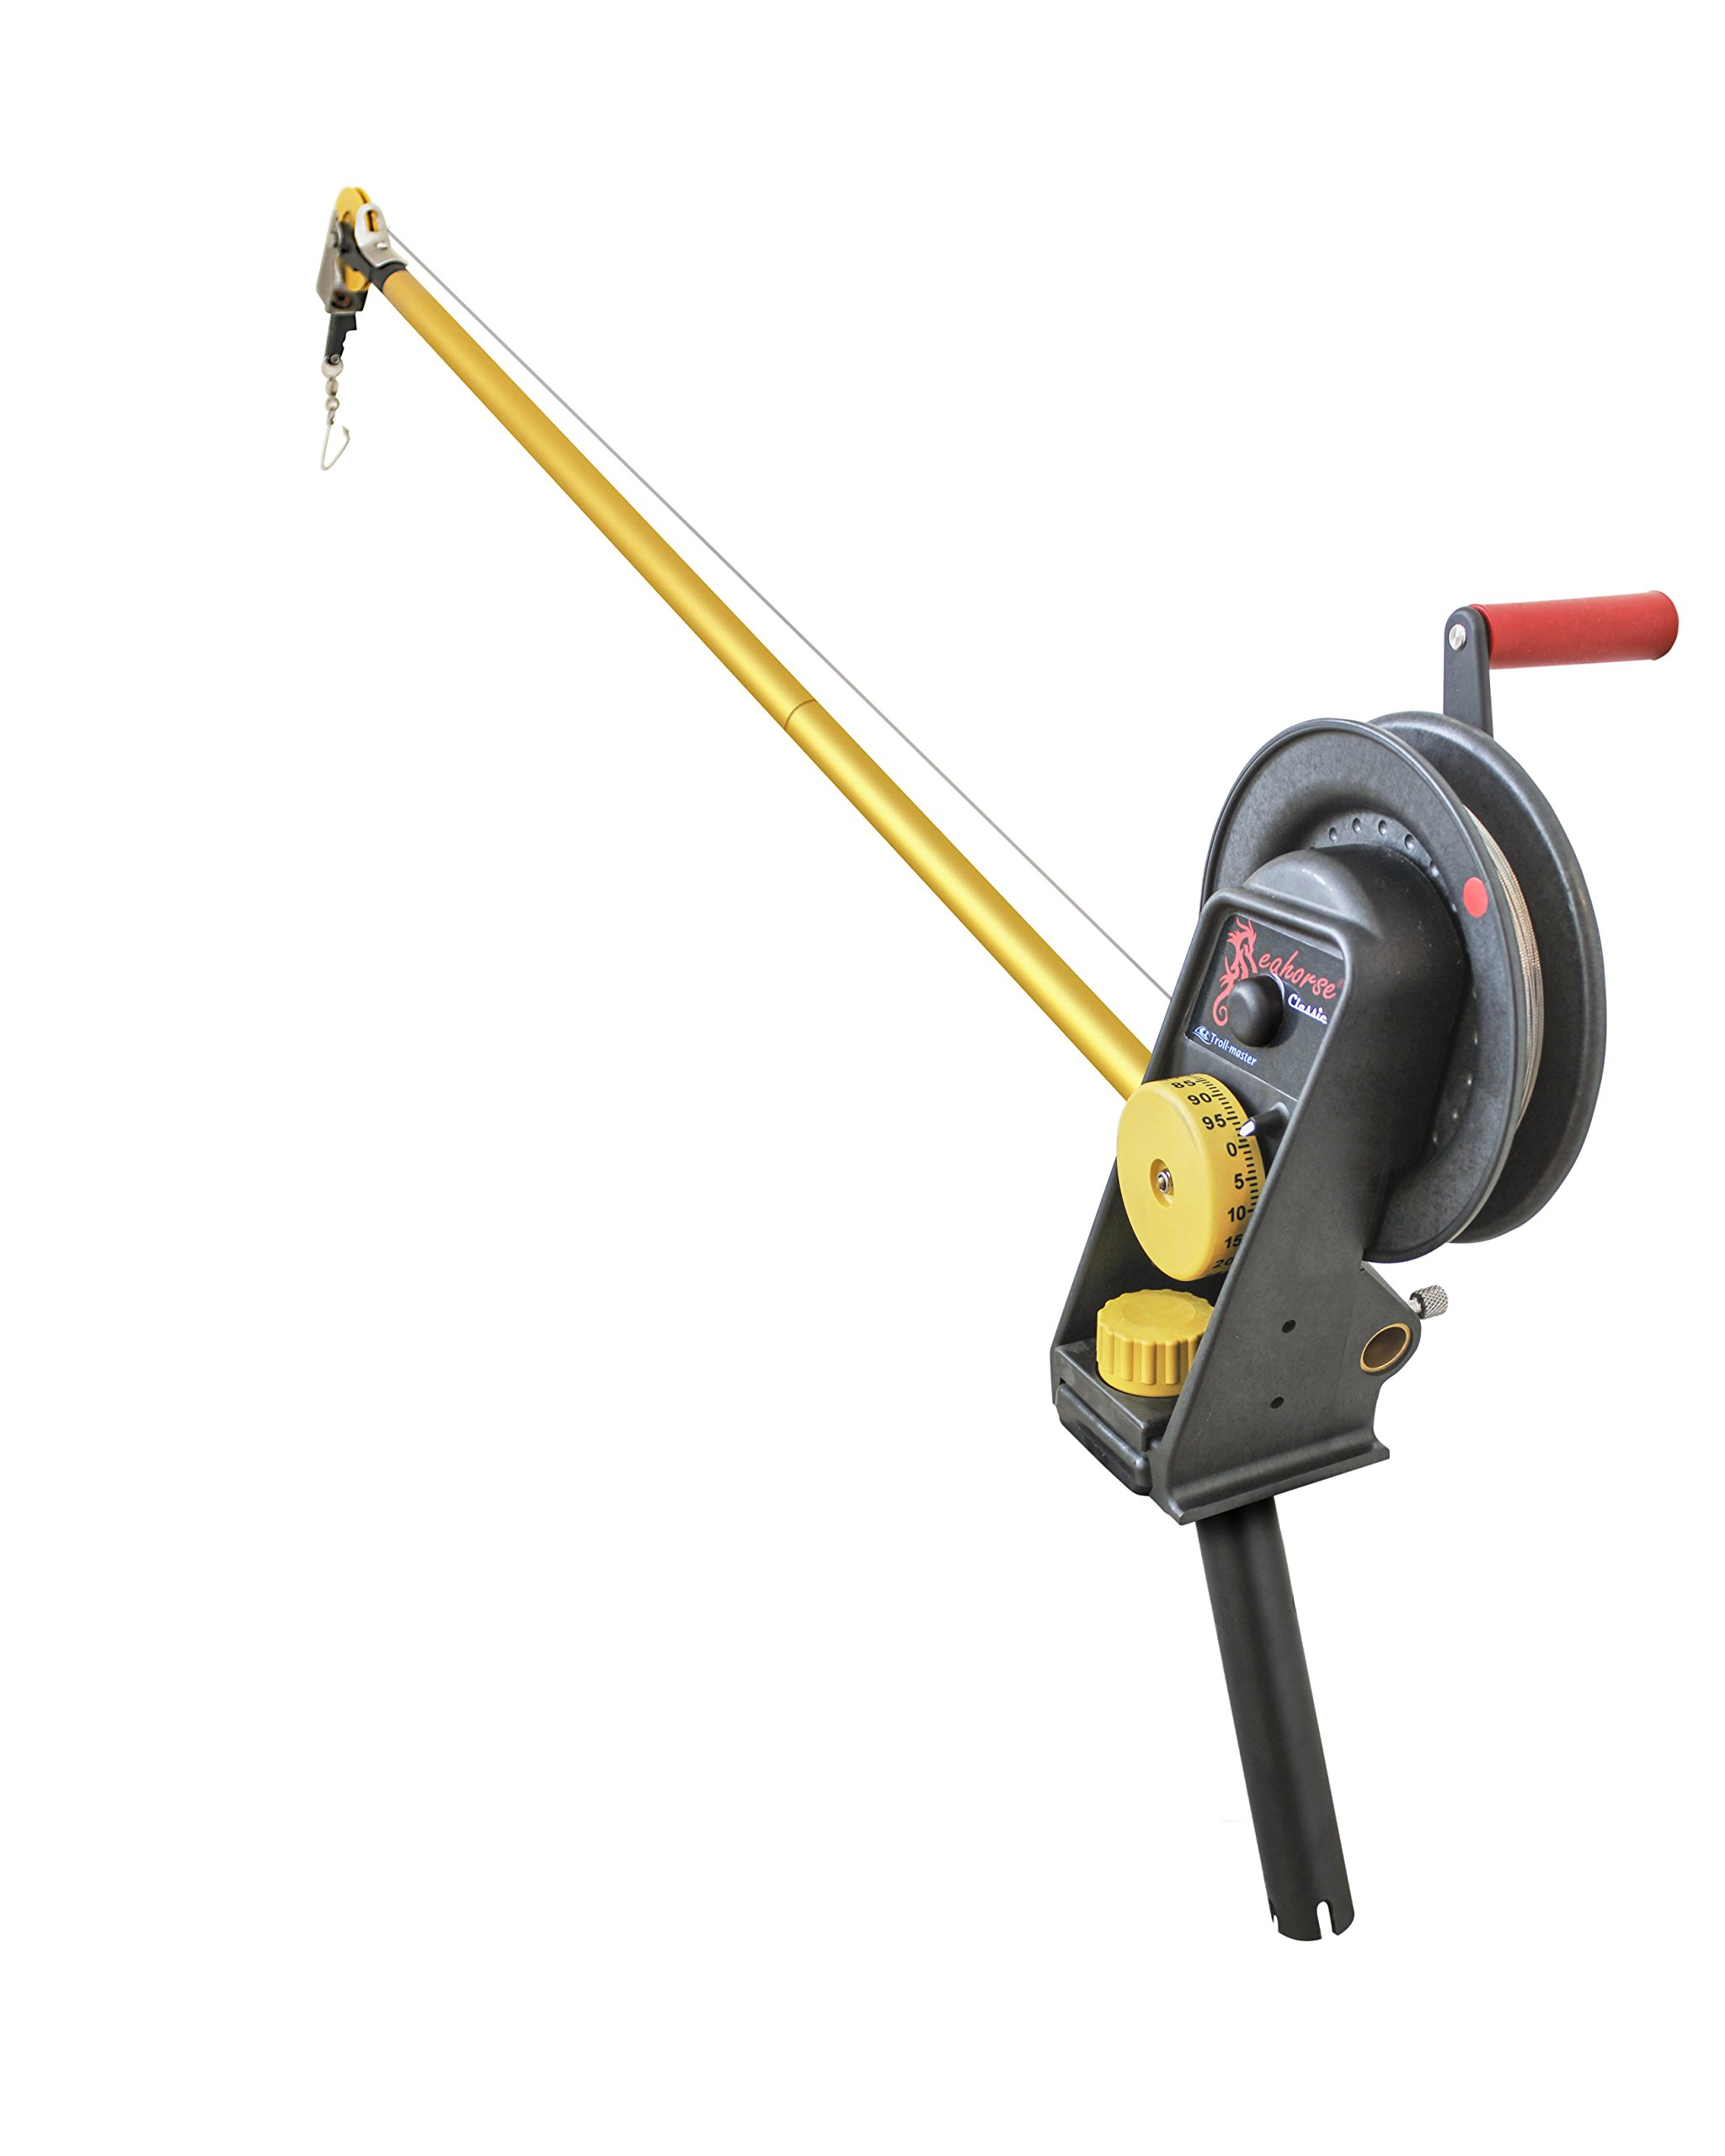 Seahorse Manual Downrigger with Extended Boom and Gimbal Mount By Troll-master by Seahorse